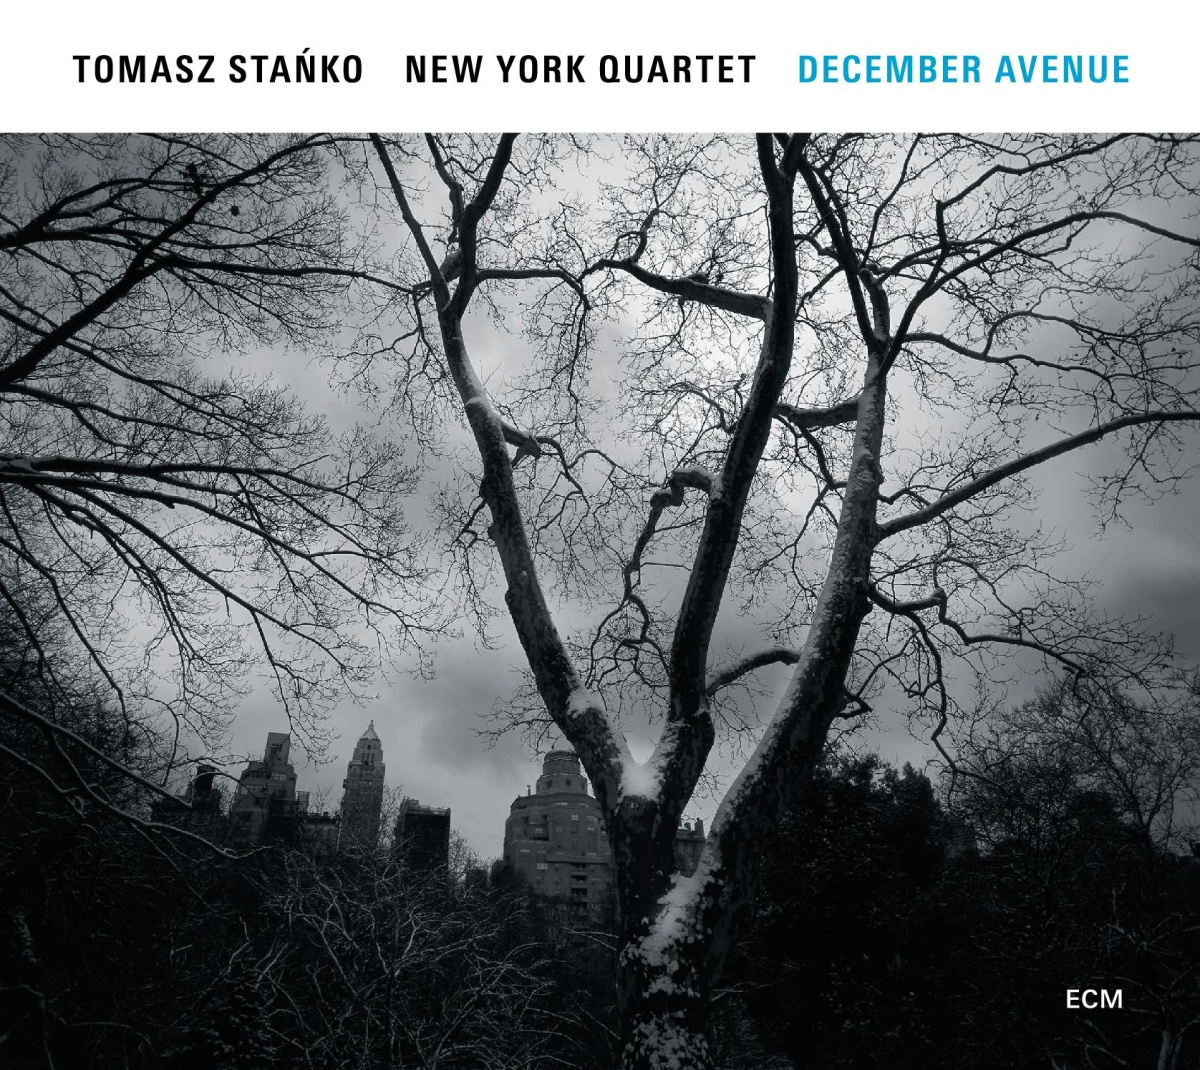 http://downbeat.com/images/reviews/tomasz_stanko_ny_4tet_december_avenue.jpg